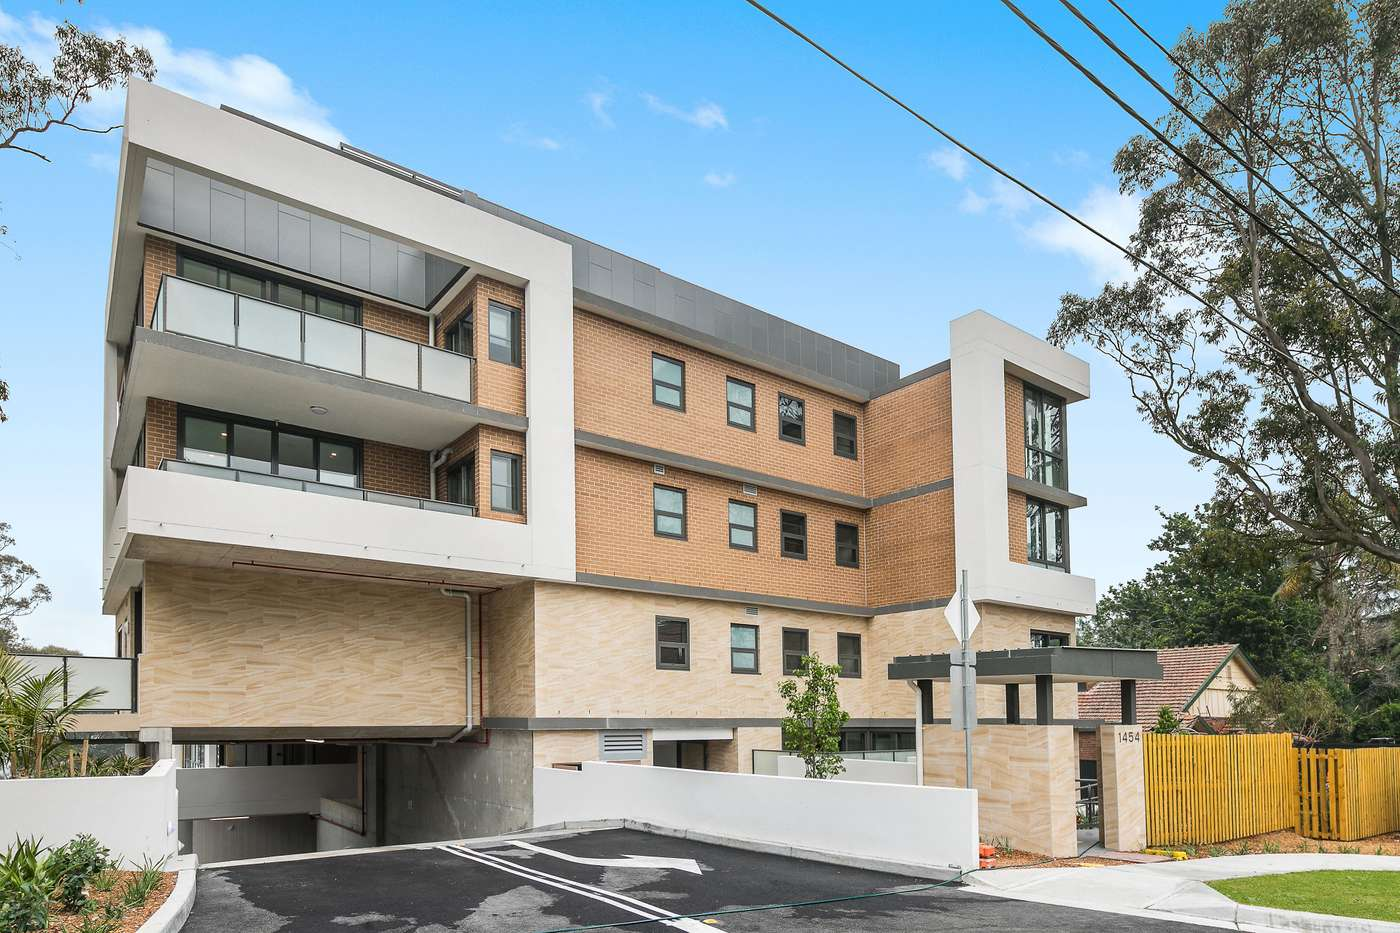 Main view of Homely apartment listing, 3 Bed/1454 Pacific Highway, Turramurra, NSW 2074